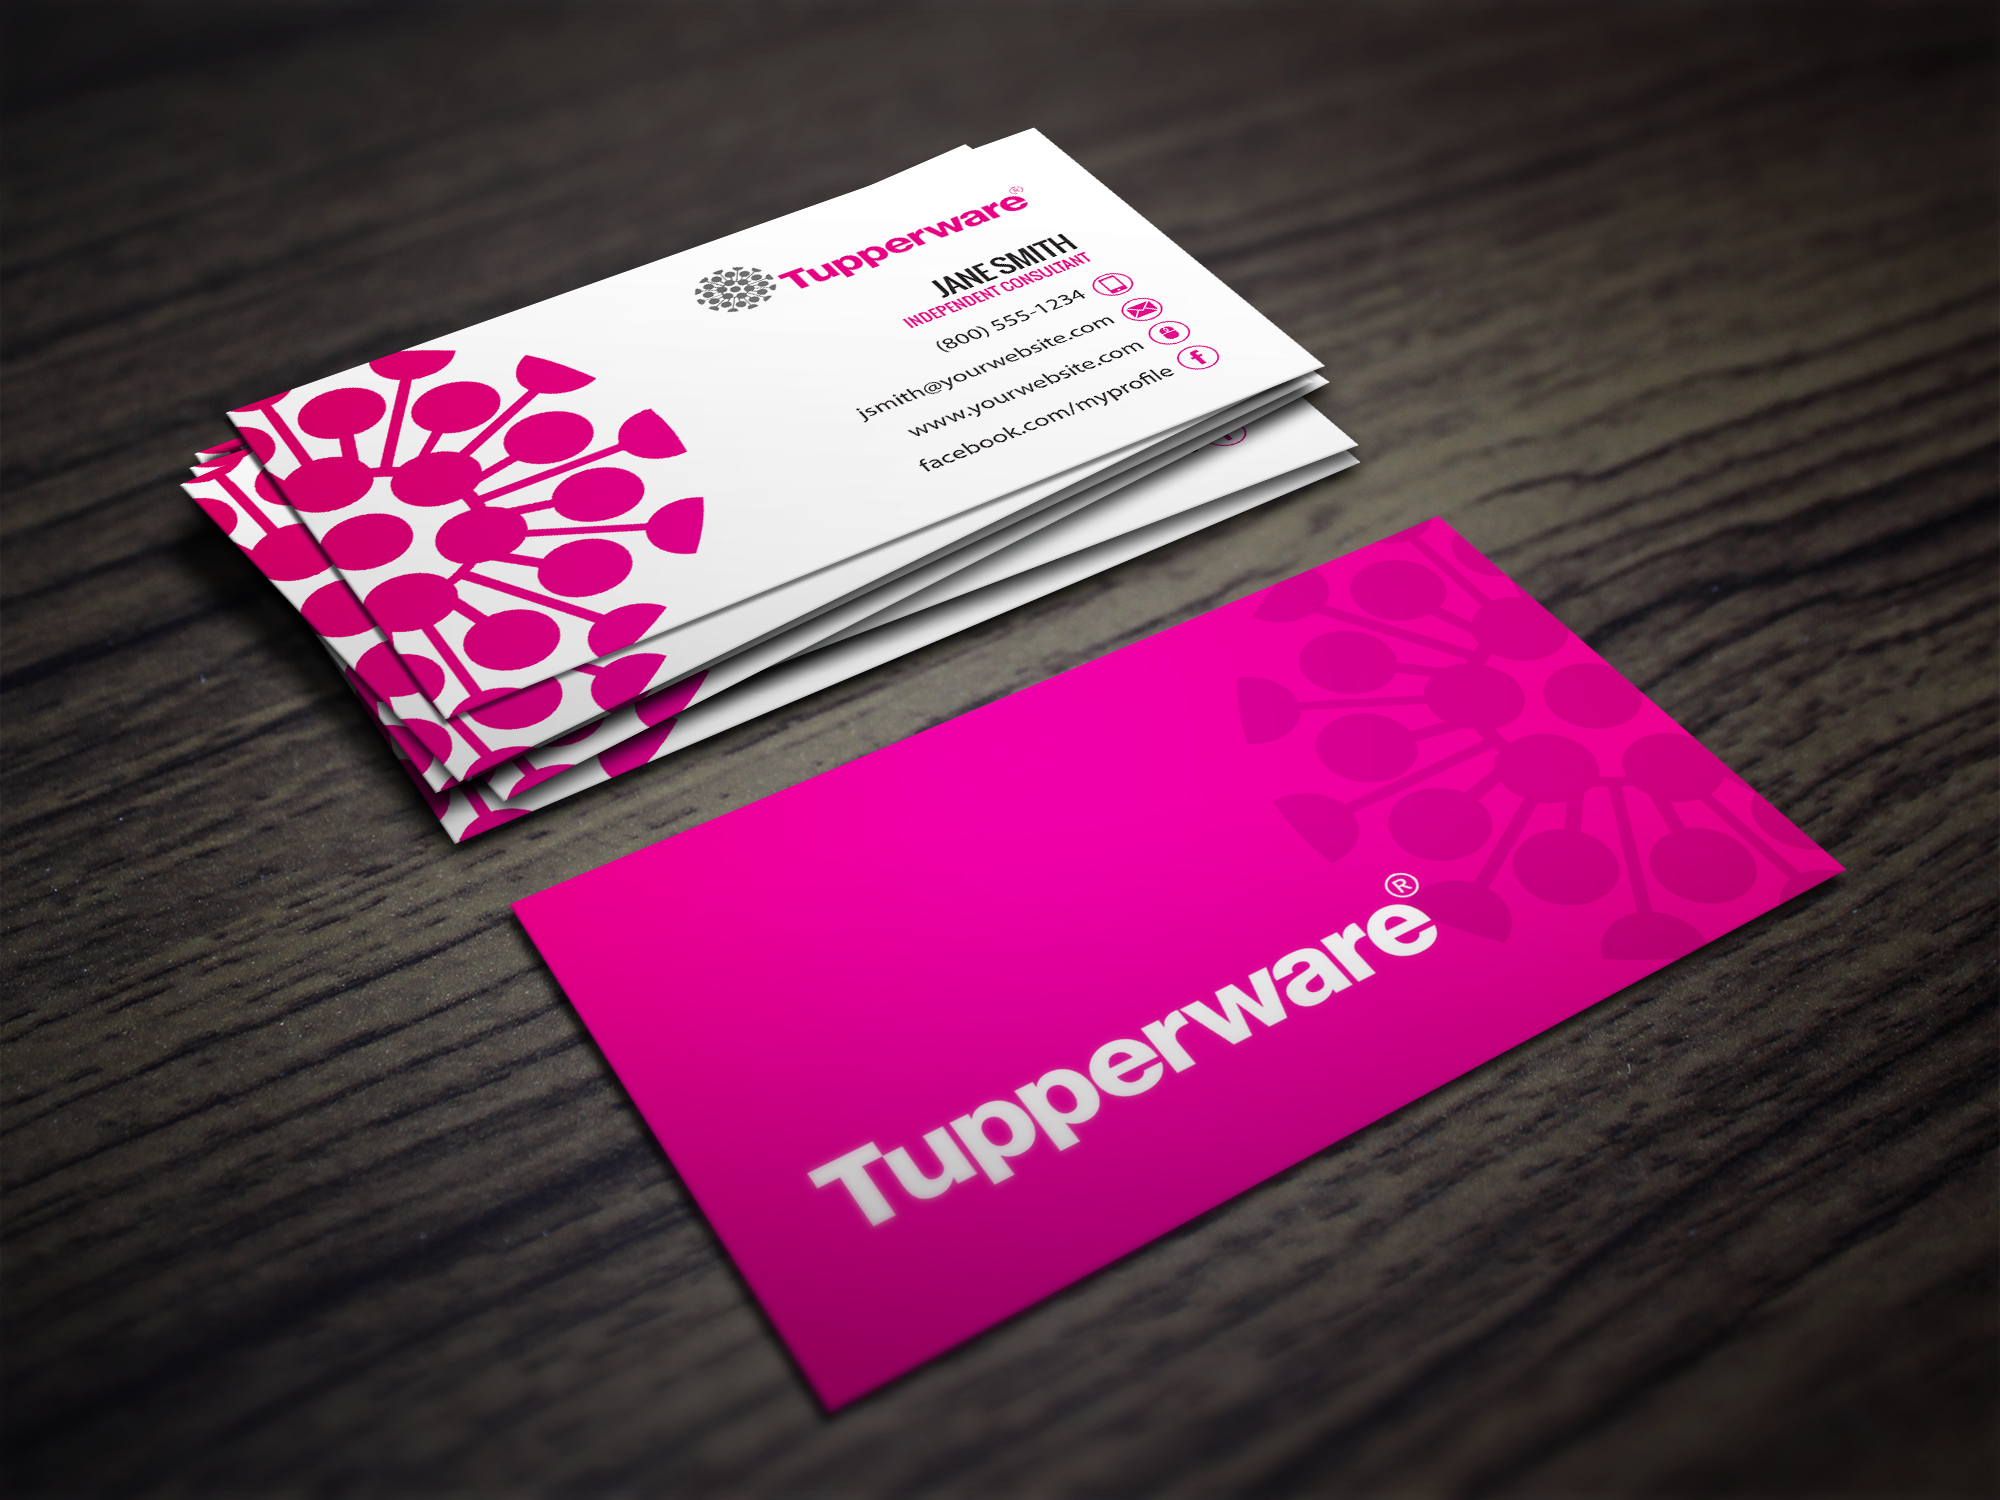 Tupperware Business Cards Free Shipping Tupperware Cards Tupperware Party Ideas